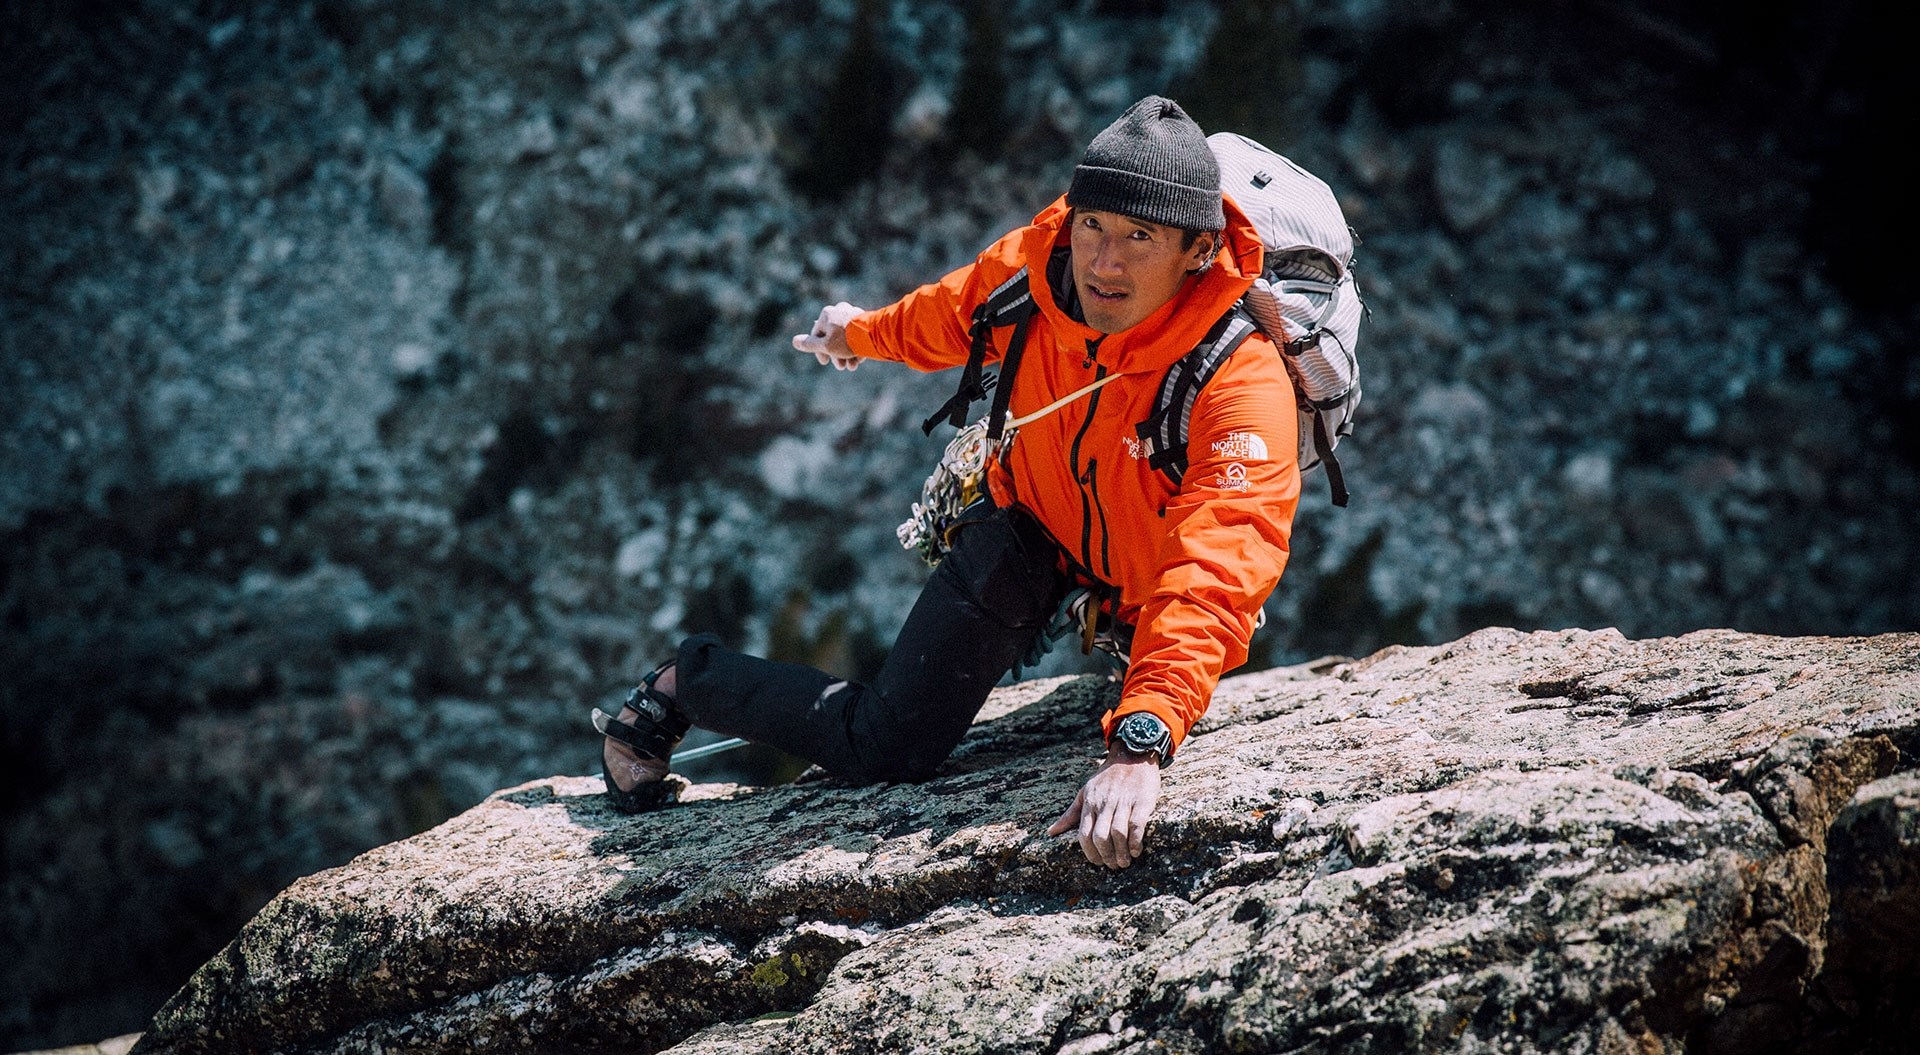 """Panerai Unveils Submersible Chono Flyback Watches in Collaboration With Jimmy Chin Officine Panerai, the Swiss watch brand with rich Italian roots, is a master at leading the way when it comes to adventure watches. This brand has been crafting dive watches and sport watches for nearly a century and has even supplied certain armed forces with underwater watches for decades. A few years ago, the brand launched an exciting new aspect with specific watches: adventure experiences. As Panerai partnered with adventurers and explorers around the world, it began offering limited-edition watches to collectors that came with a paired """"experience."""" The most recent: Jimmy Chin. Mountaineer, alpinist climber, photographer and film maker, adventurer Jimmy Chin lives life on the edge – literally. He has climbed extreme mountains (including Everest, the summit of which he also skied off of), survived multiple avalanches and won an Academy Award (for co-directing the documentary Free Solo). The multi-talented explorer is a Panerai brand ambassador and recently helped design a watch in his name. The Panerai Submersible Chrono Flyback Jimmy Chin Xperience edition watch was created in a limited edition of just 14 pieces and was sold with an accompanying multi-day event in his hometown of Jackson Hole, Wyoming. There, proud owners of the watch spent a couple of days climbing the Grand Tetons with Chin, learning to wake surf in Jackson lake, and experiencing Chin's favorite restaurants. Panerai has had several similar experiences with its different ambassadors and their special timepieces over the past year or so, but this was the first event to be held in America. The Xperience watch is a light weight 47mm titanium piece with black matte DLC coating. The crown, lever and bezel are in titanium for nice contrast. The hands are filled with white Super-LumiNova and the dial is a shaded charcoal gray with blue accents. The case back features an etching of a dramatic mountainous landscape with"""